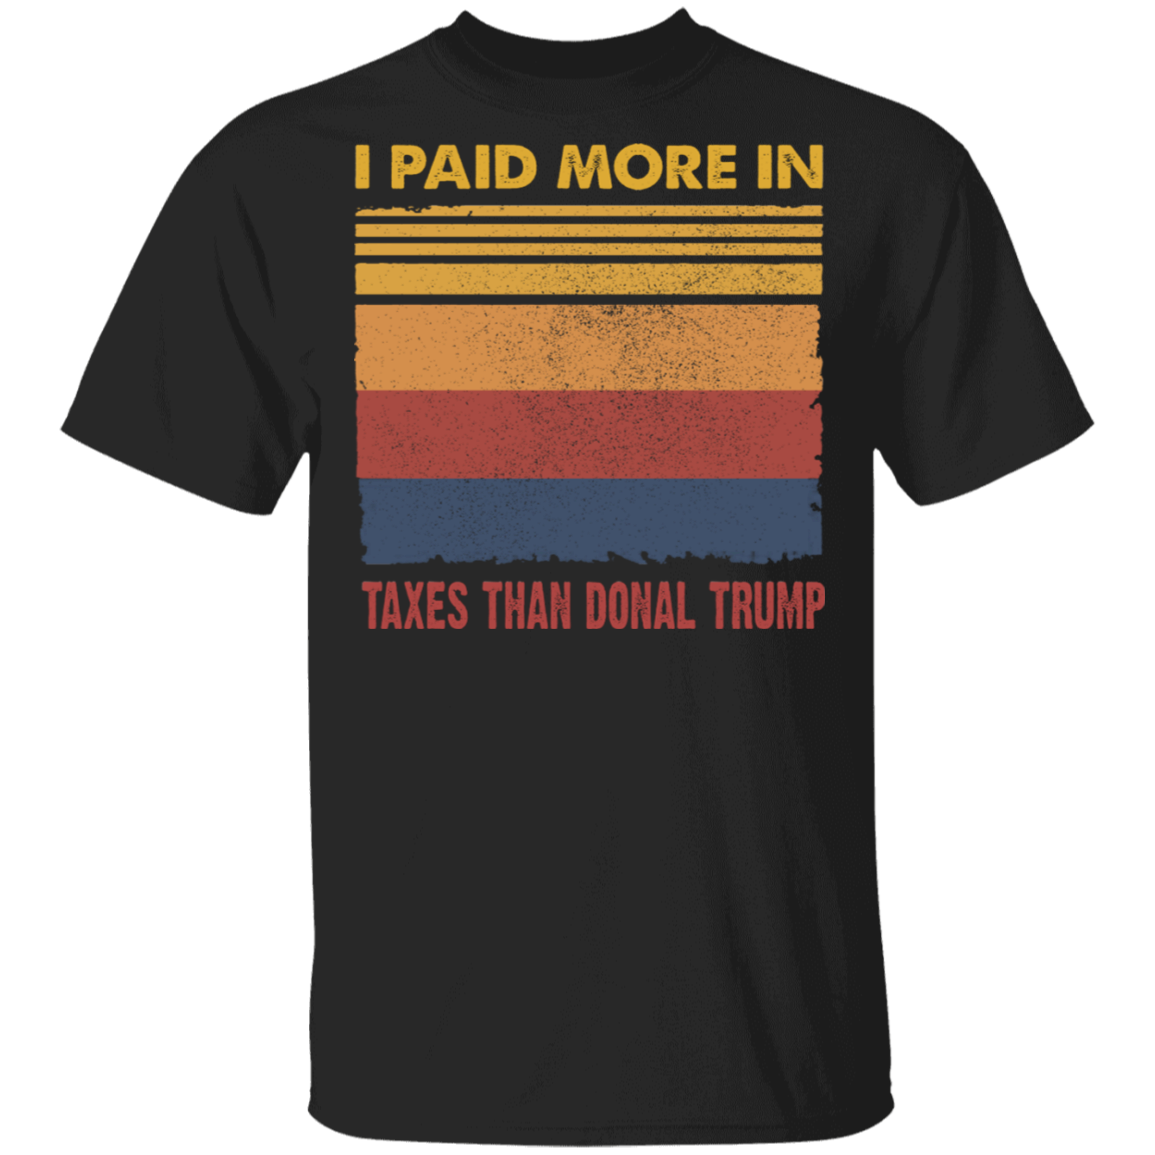 I Paid More In Taxes Than Donald Trump Vintage Shirt Democrats Support Biden Campaign Merch